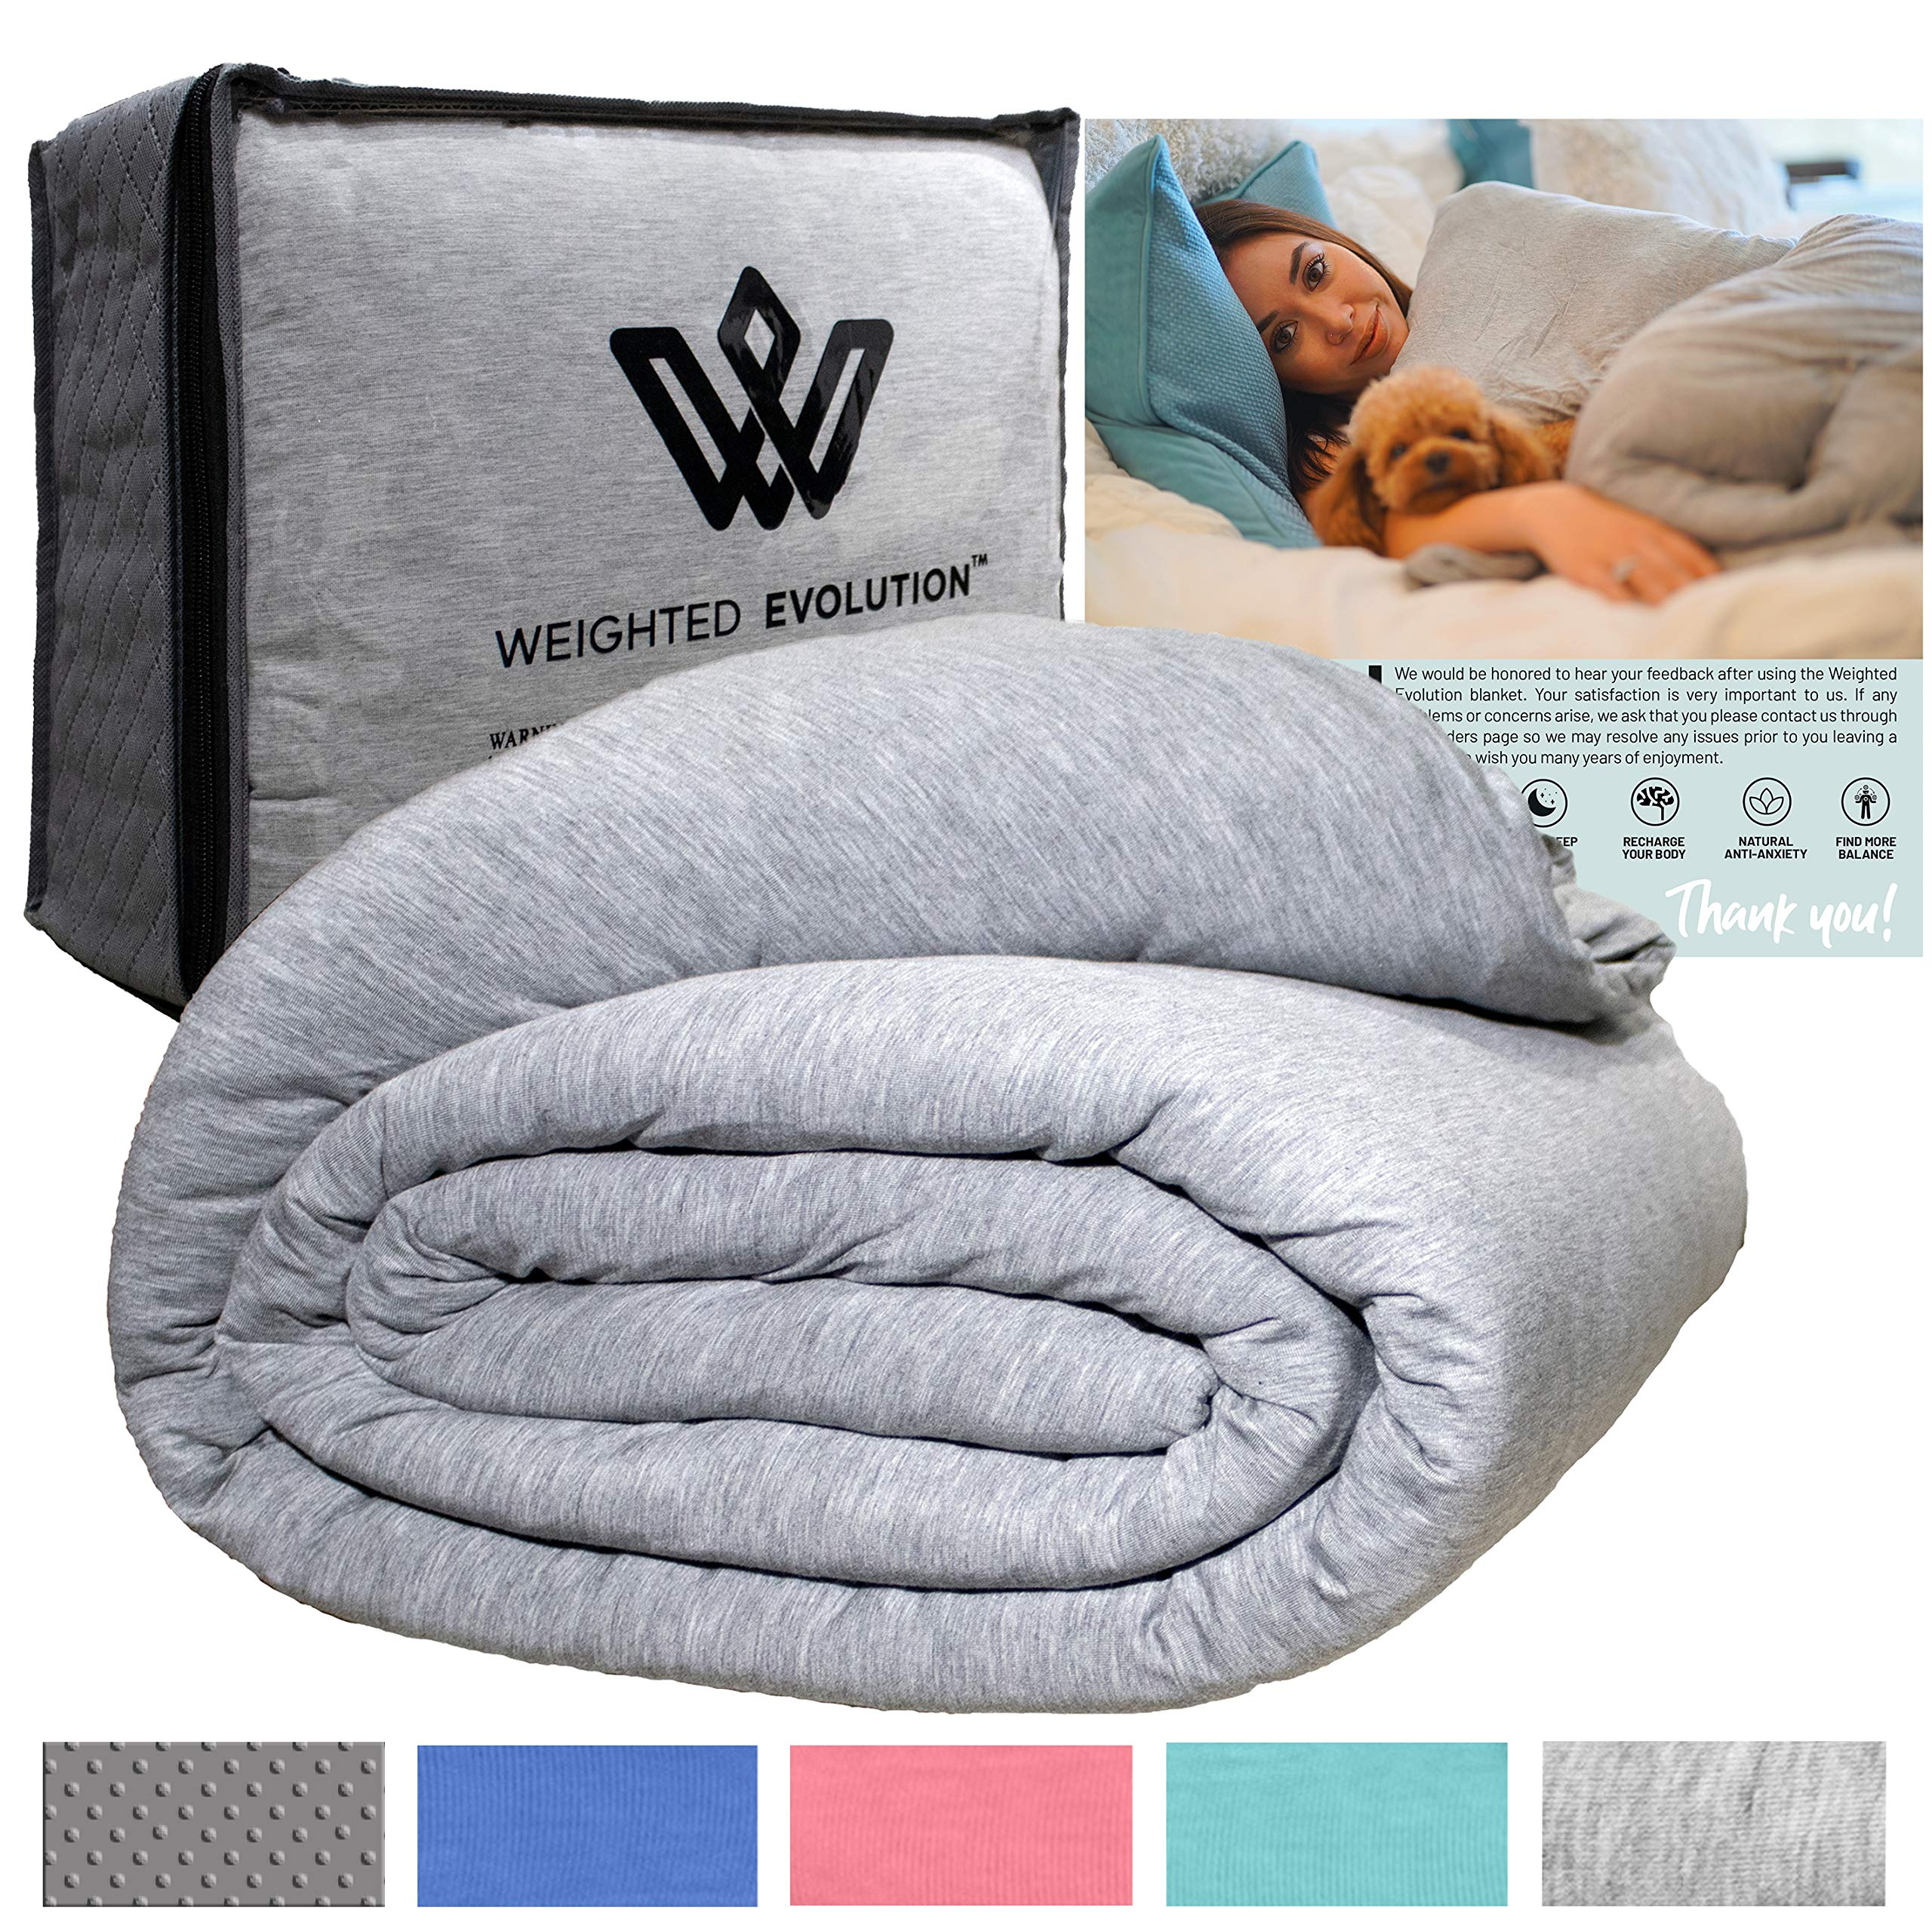 """Weighted Evolution Weighted Blanket for Kids + Bonus Organic Bamboo Duvet Cover Best Blanket for Kids-Hypoallergenic Warm Cooling Calm Cozy Heavy Blanket (Grey, 41""""x 60""""